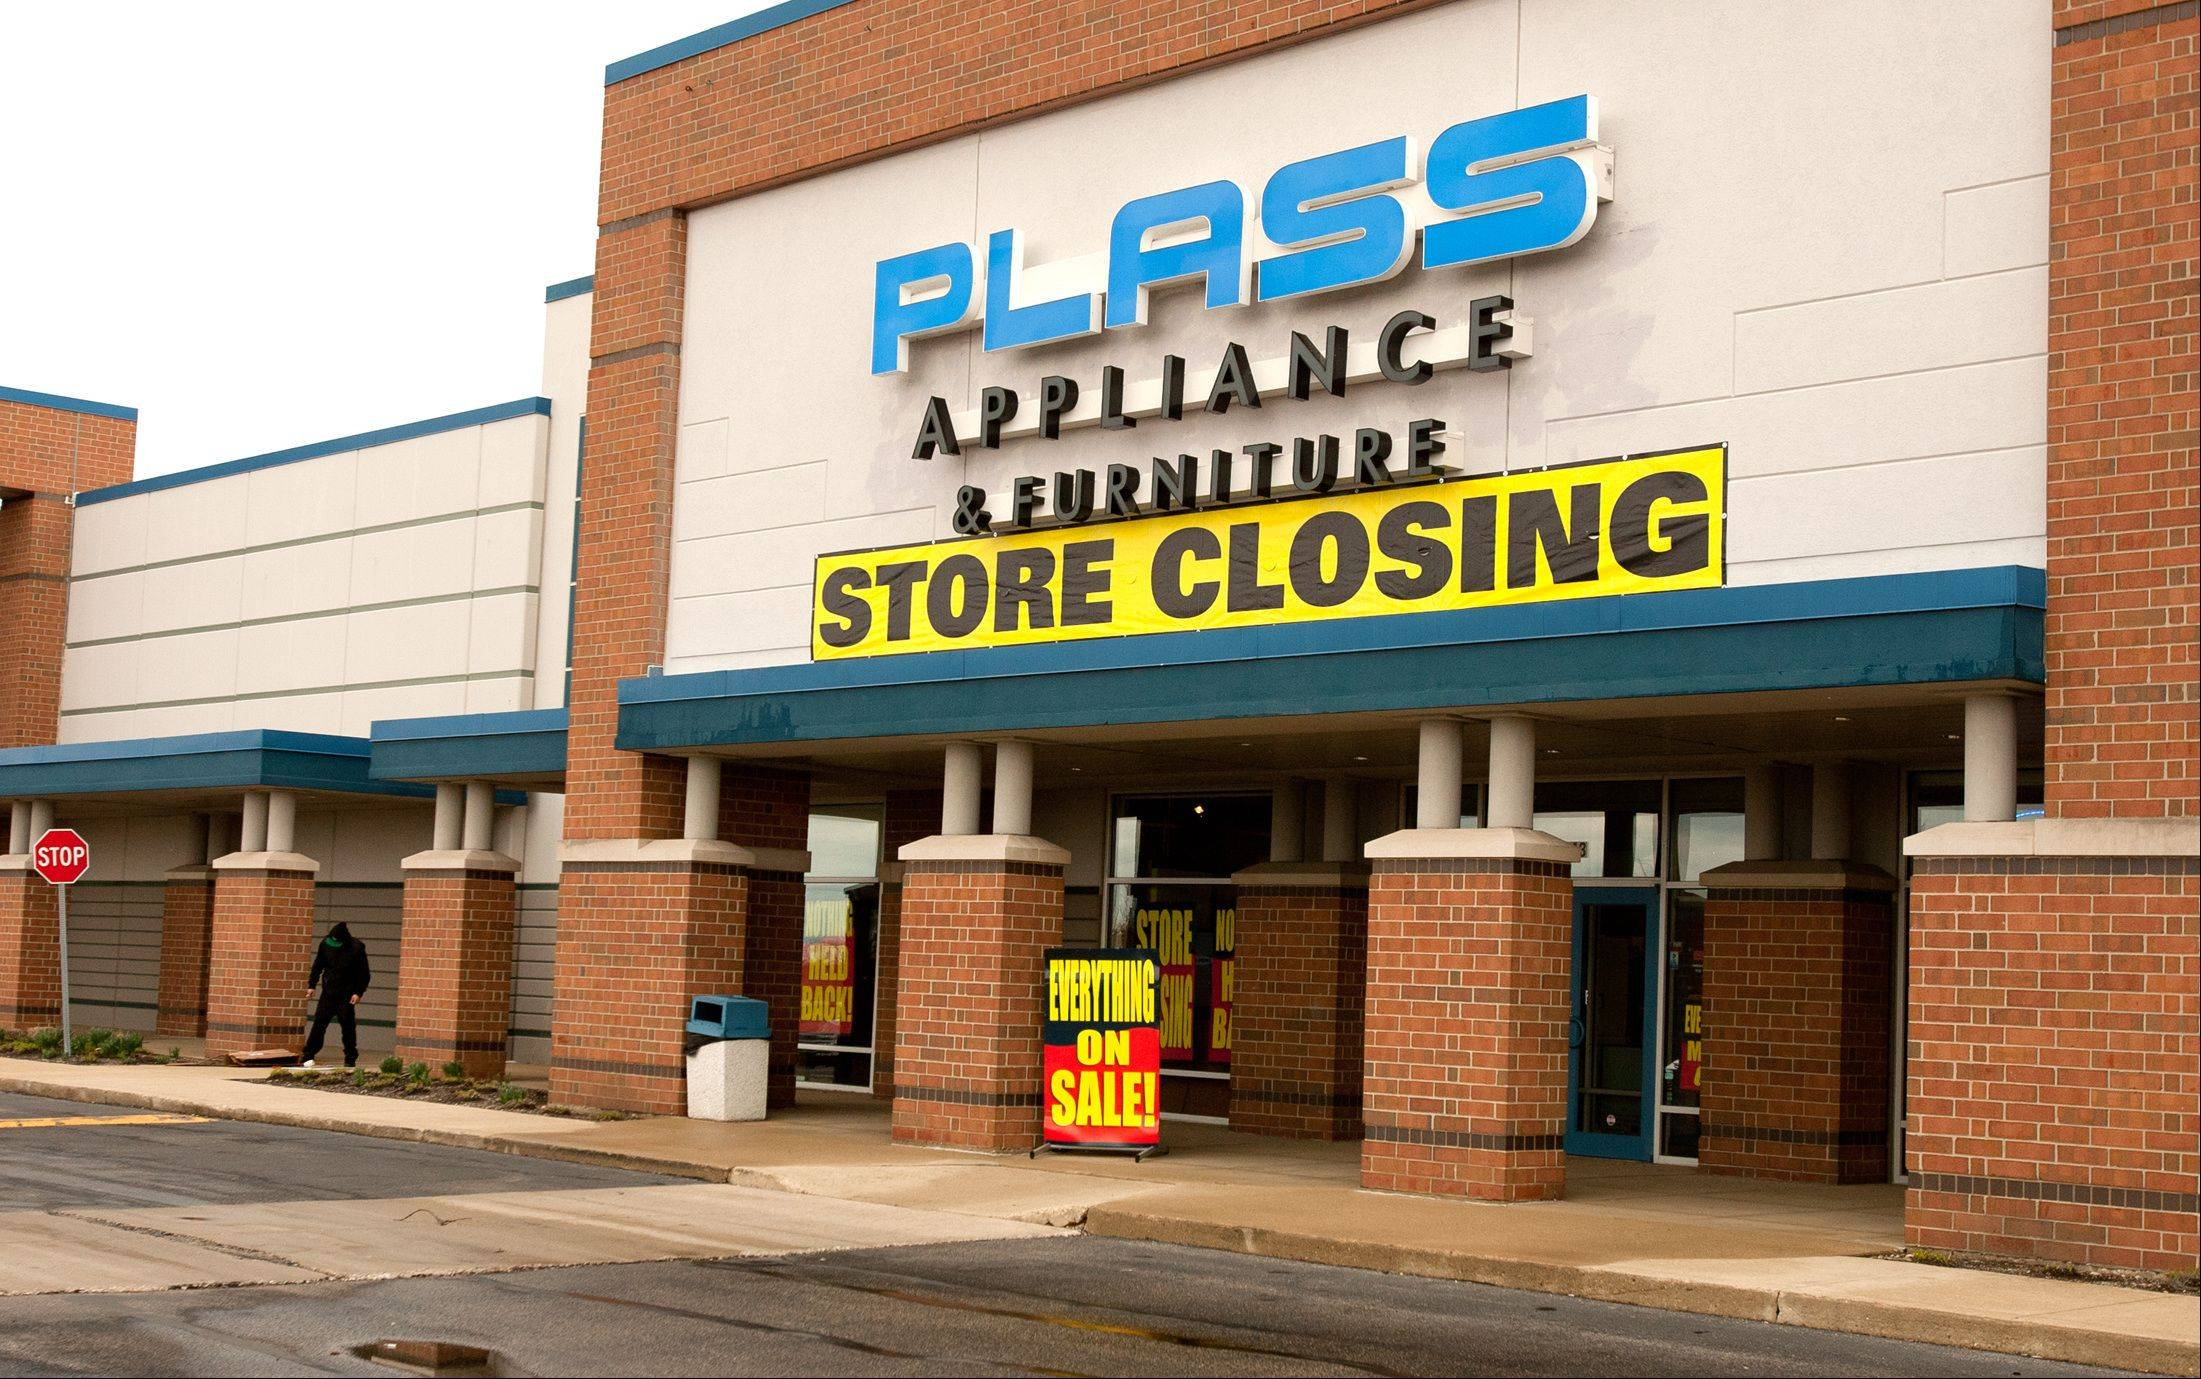 Plass Appliance stores going out of business. This is the Naperville location.